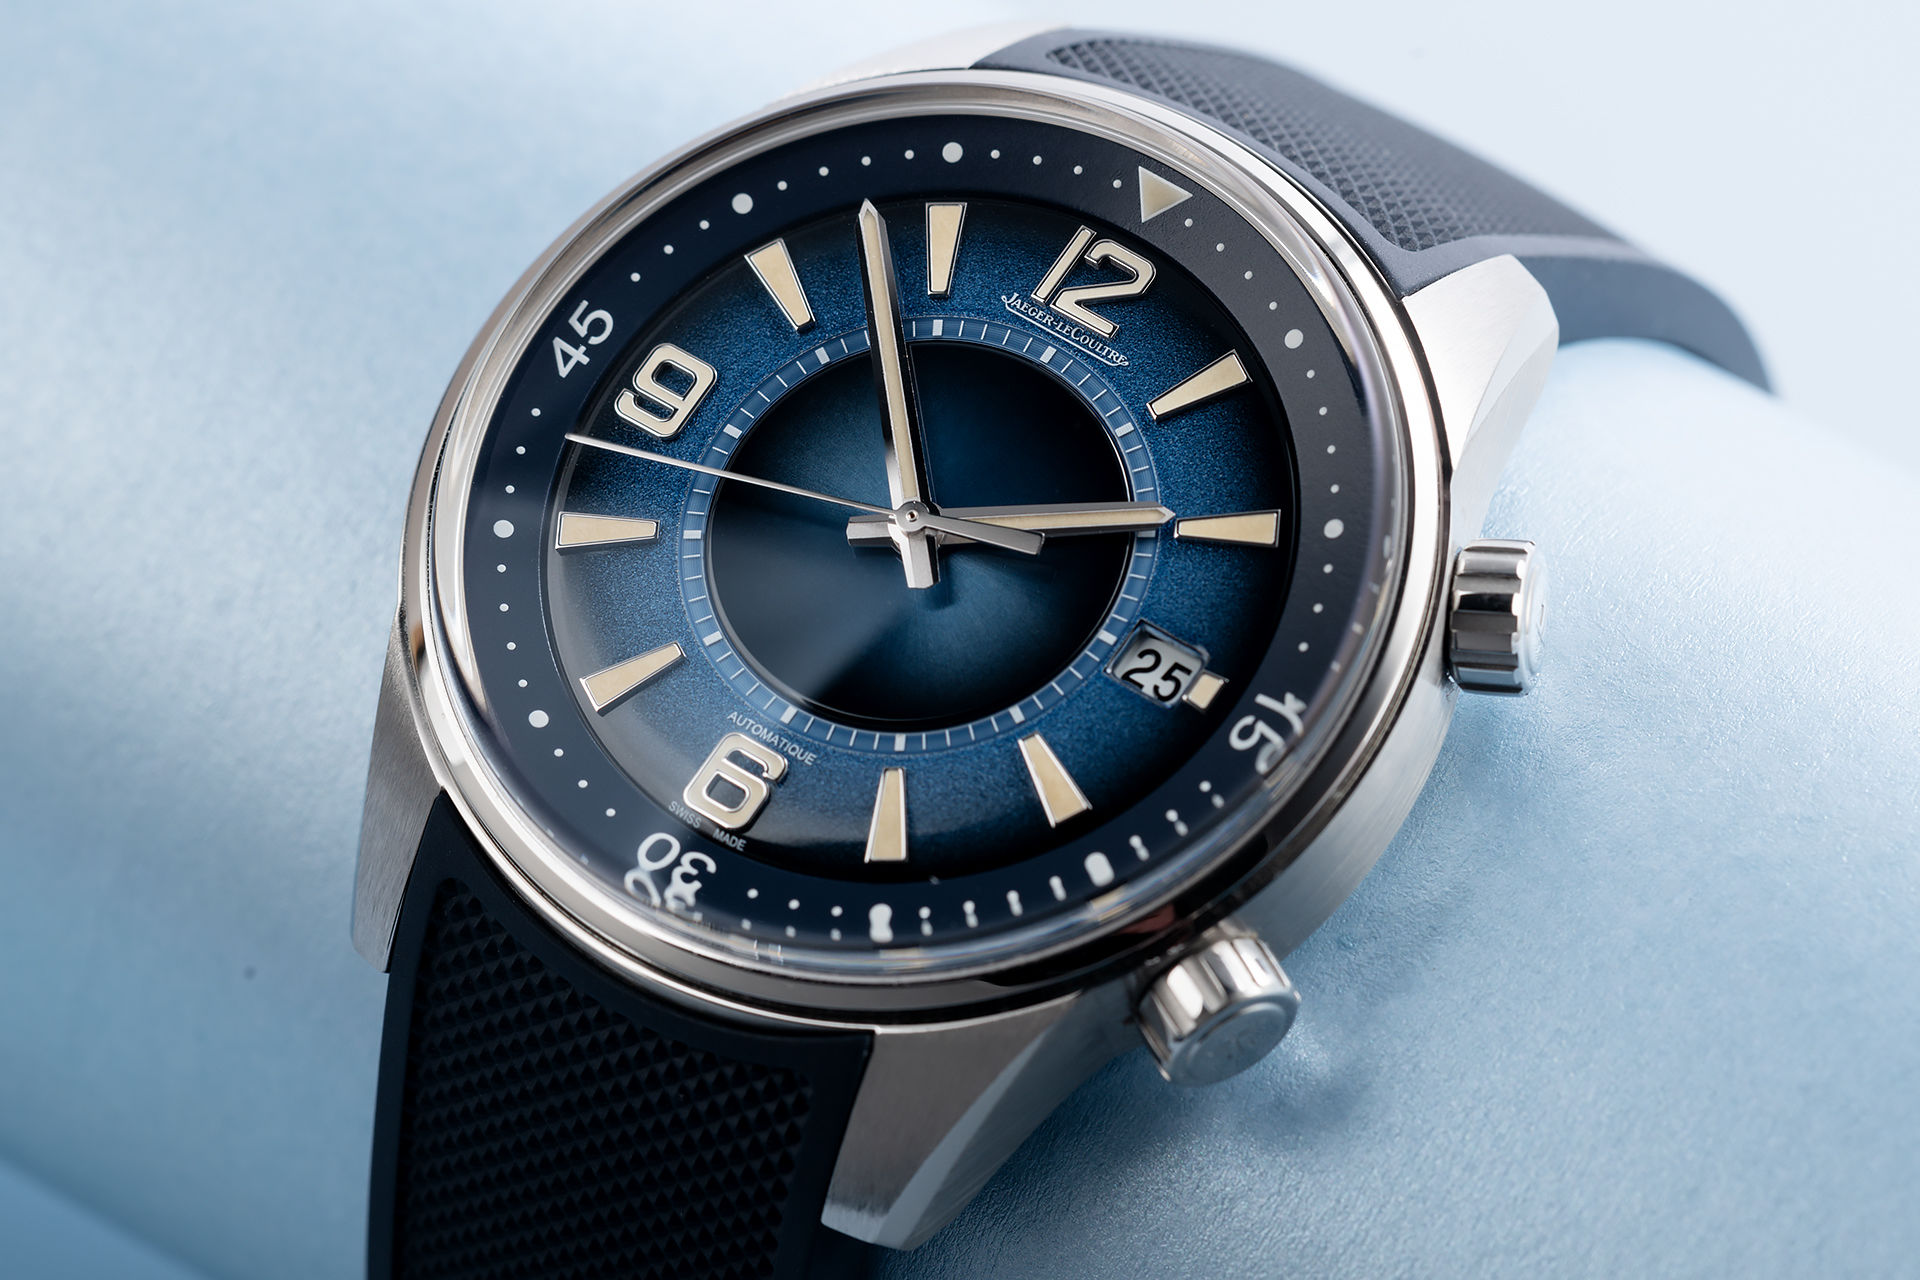 ref Q9068681 | Unworn Limited Edition 'JLC Warranty to 2027' | Jaeger-leCoultre Polaris